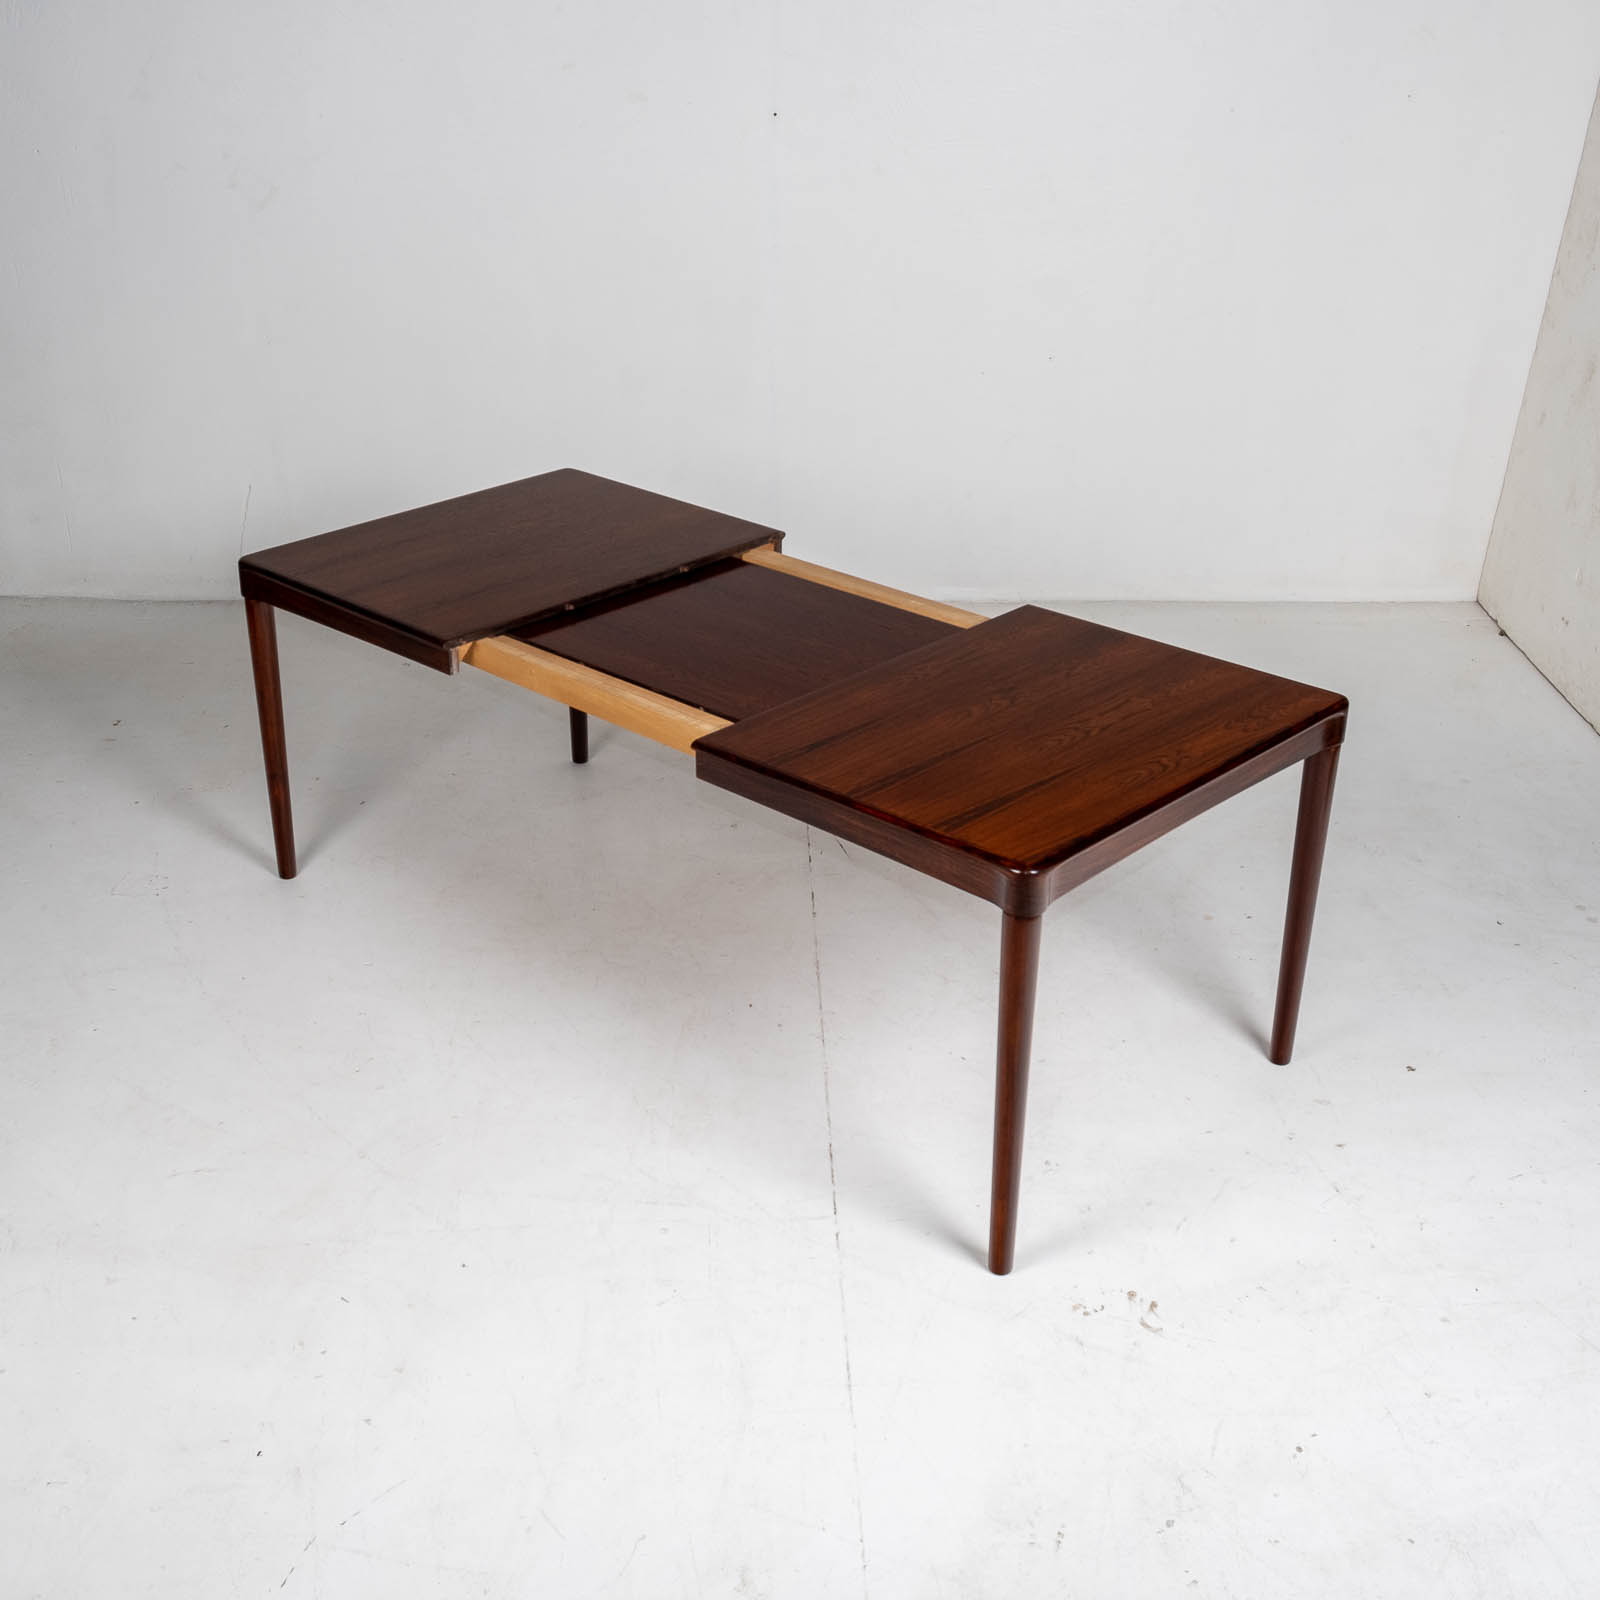 Extendable Dining Table By Hw Klein For Bramin In Rosewood, 1960s, Denmark5